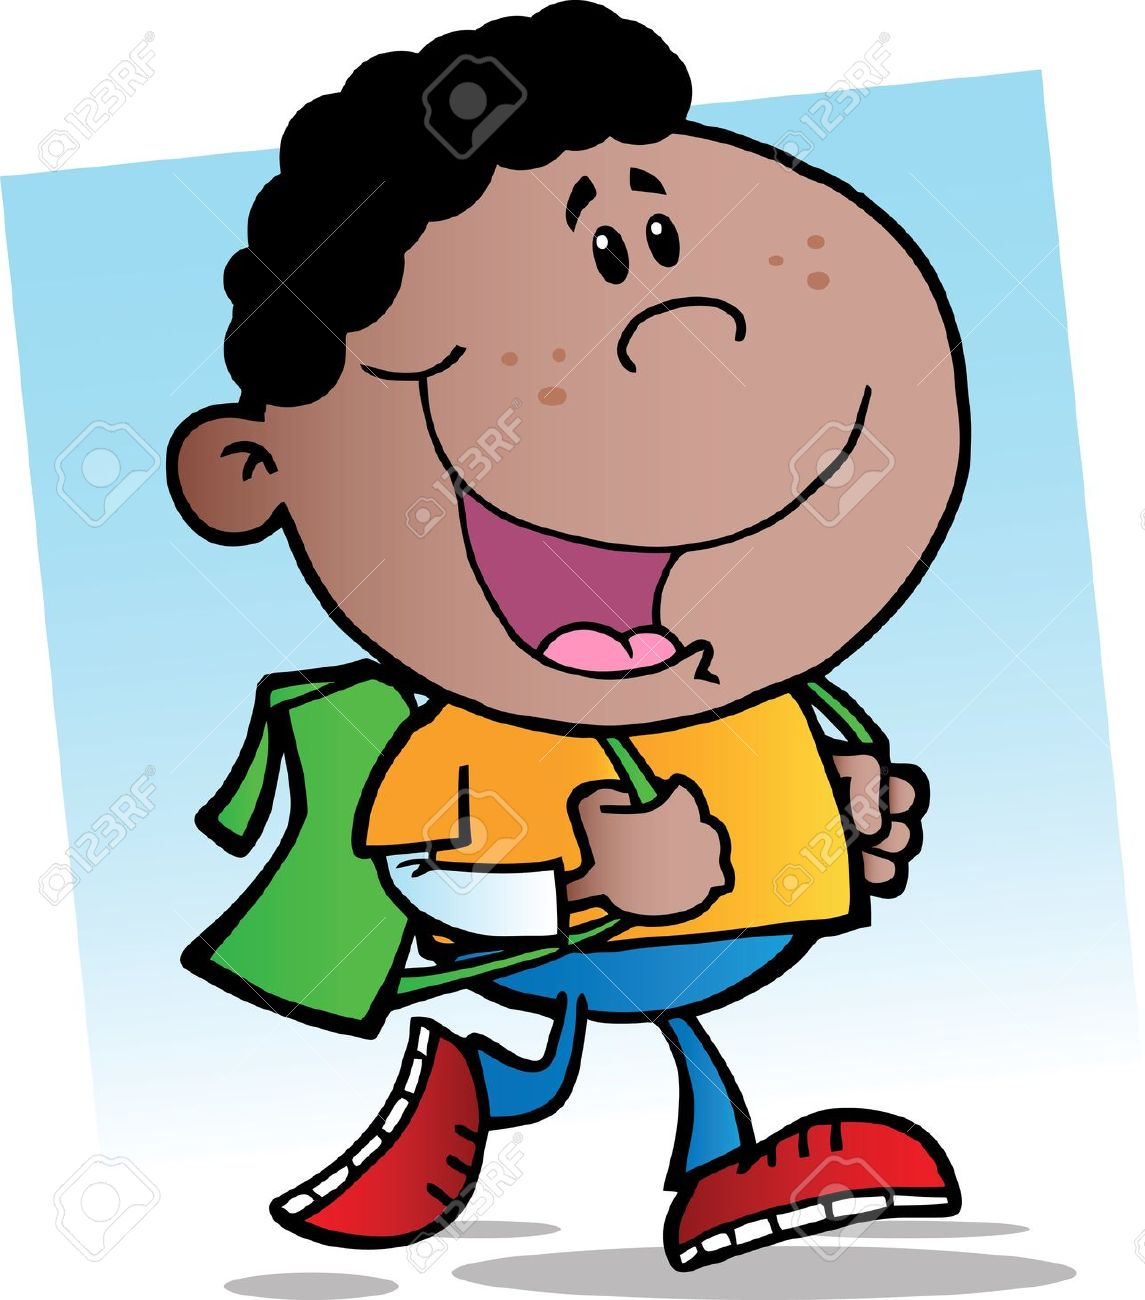 African american back to school clipart.